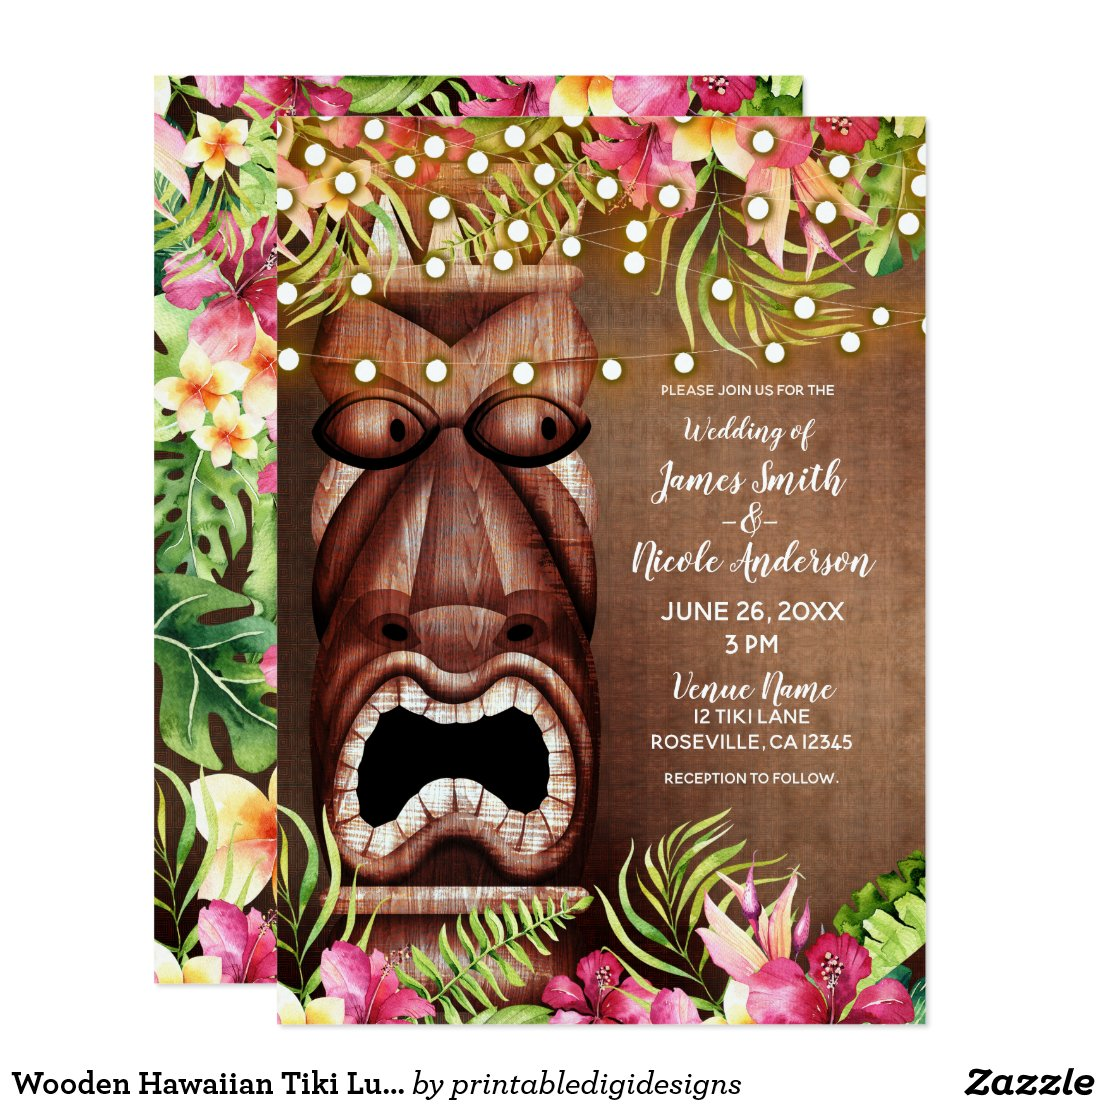 Wooden Hawaiian Tiki Luau Summer Beach Wedding Card